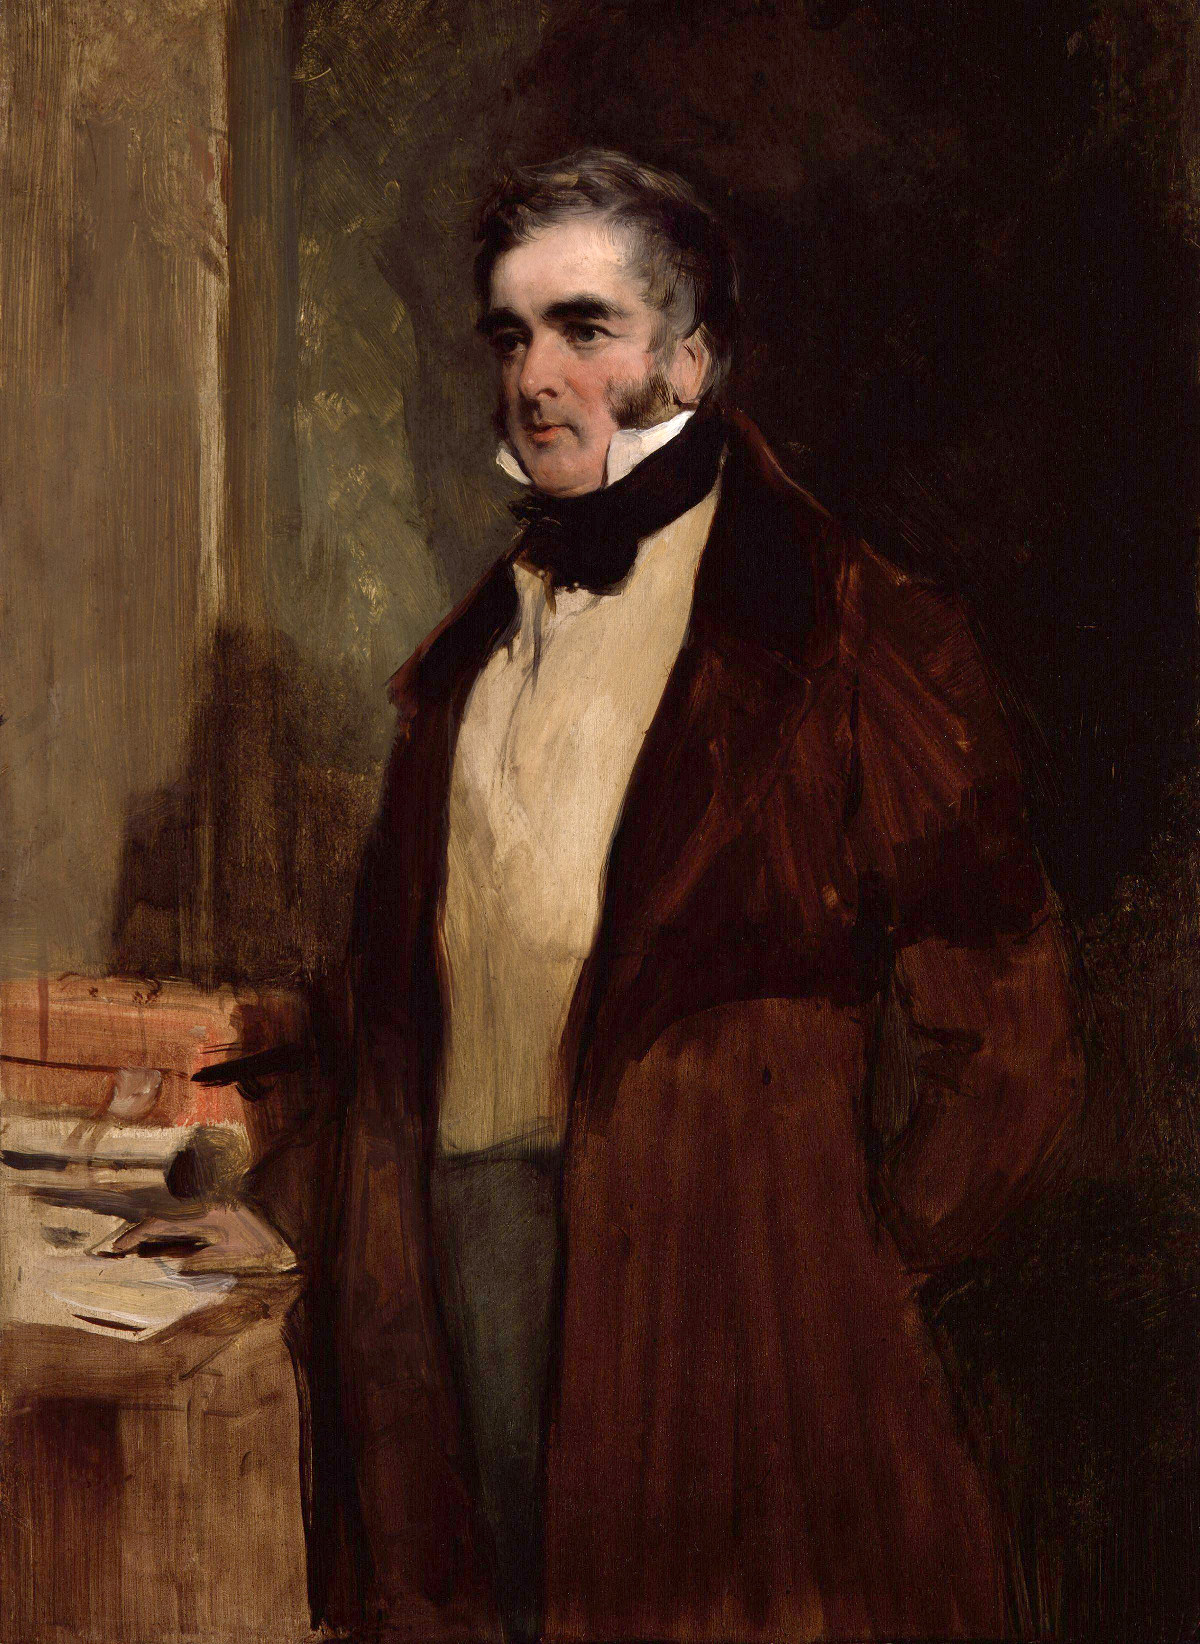 William Lamb, 2nd Viscount Melbourne, by Sir Edwin Henry Landseer